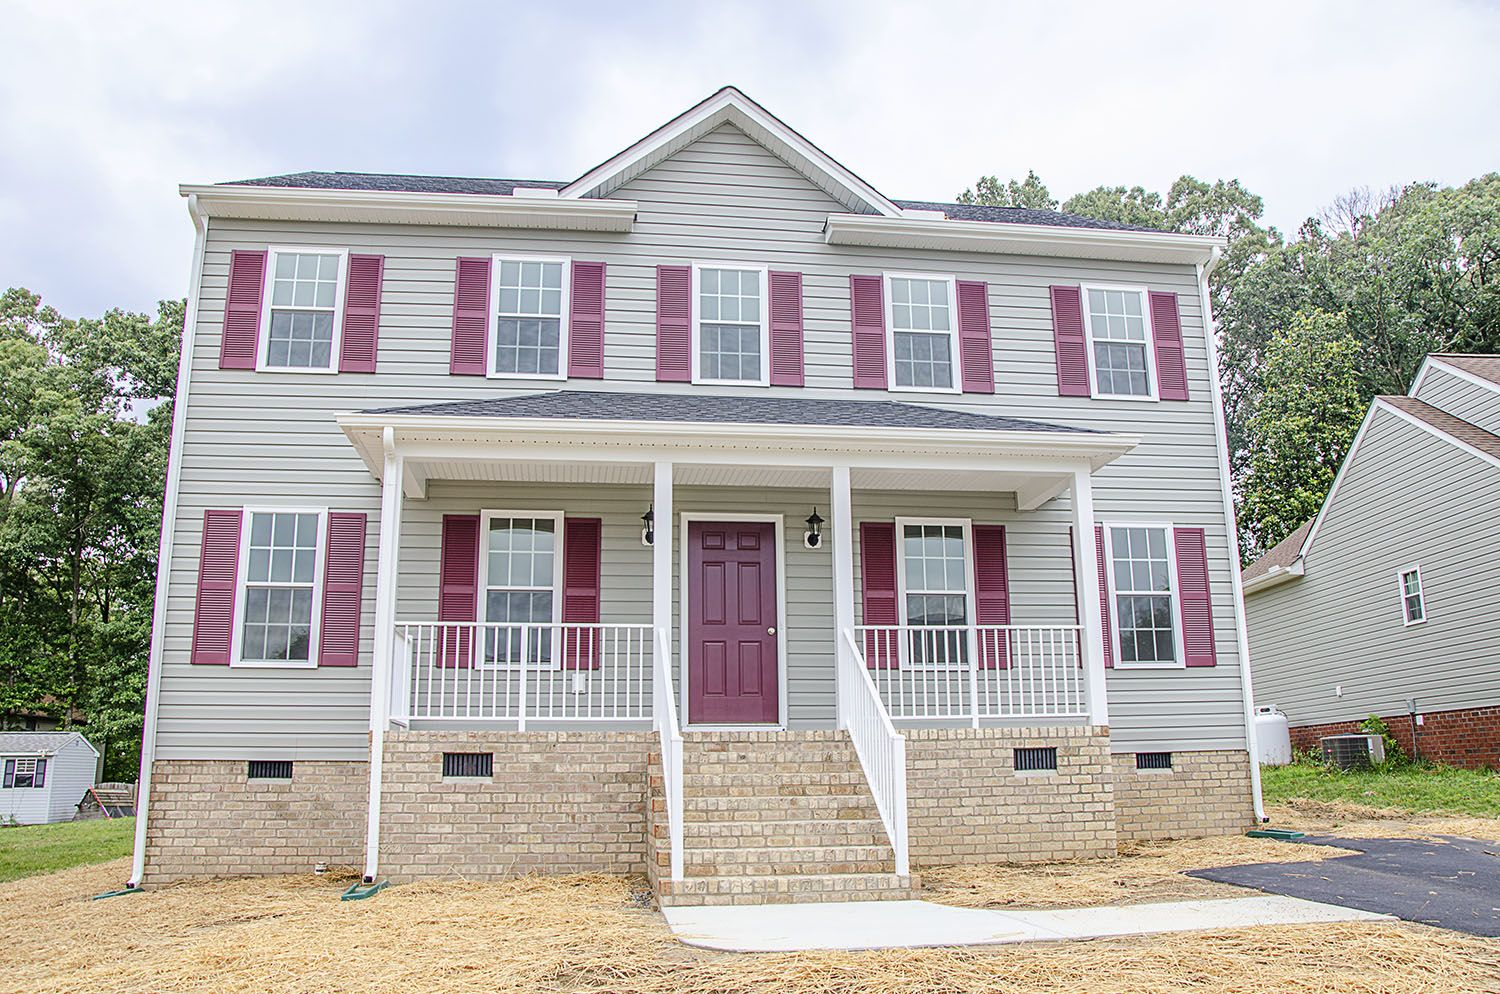 Two Story Home With Gray Siding And Maroon Shutters